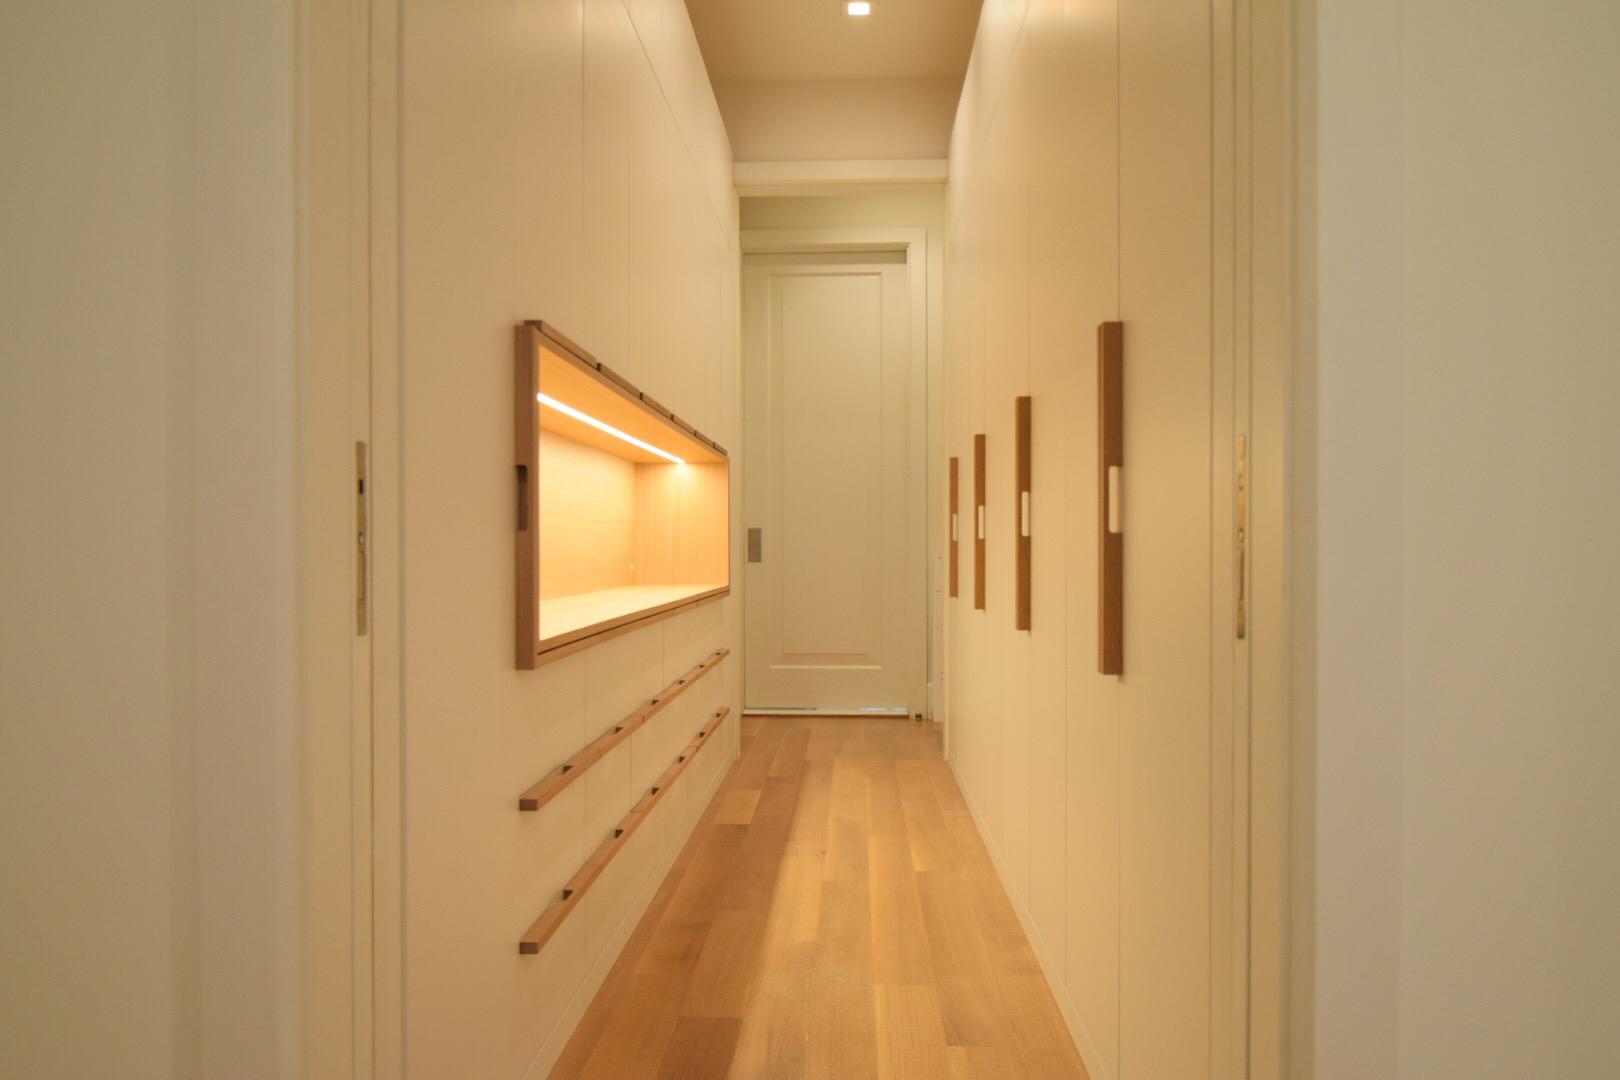 custom-walk-in-closet-white-lacquer-finish-maple-interior-white-oak-handles-with-drawers-and-white-oak-accent-open-display-cabinet-with-LED-lighting.jpg